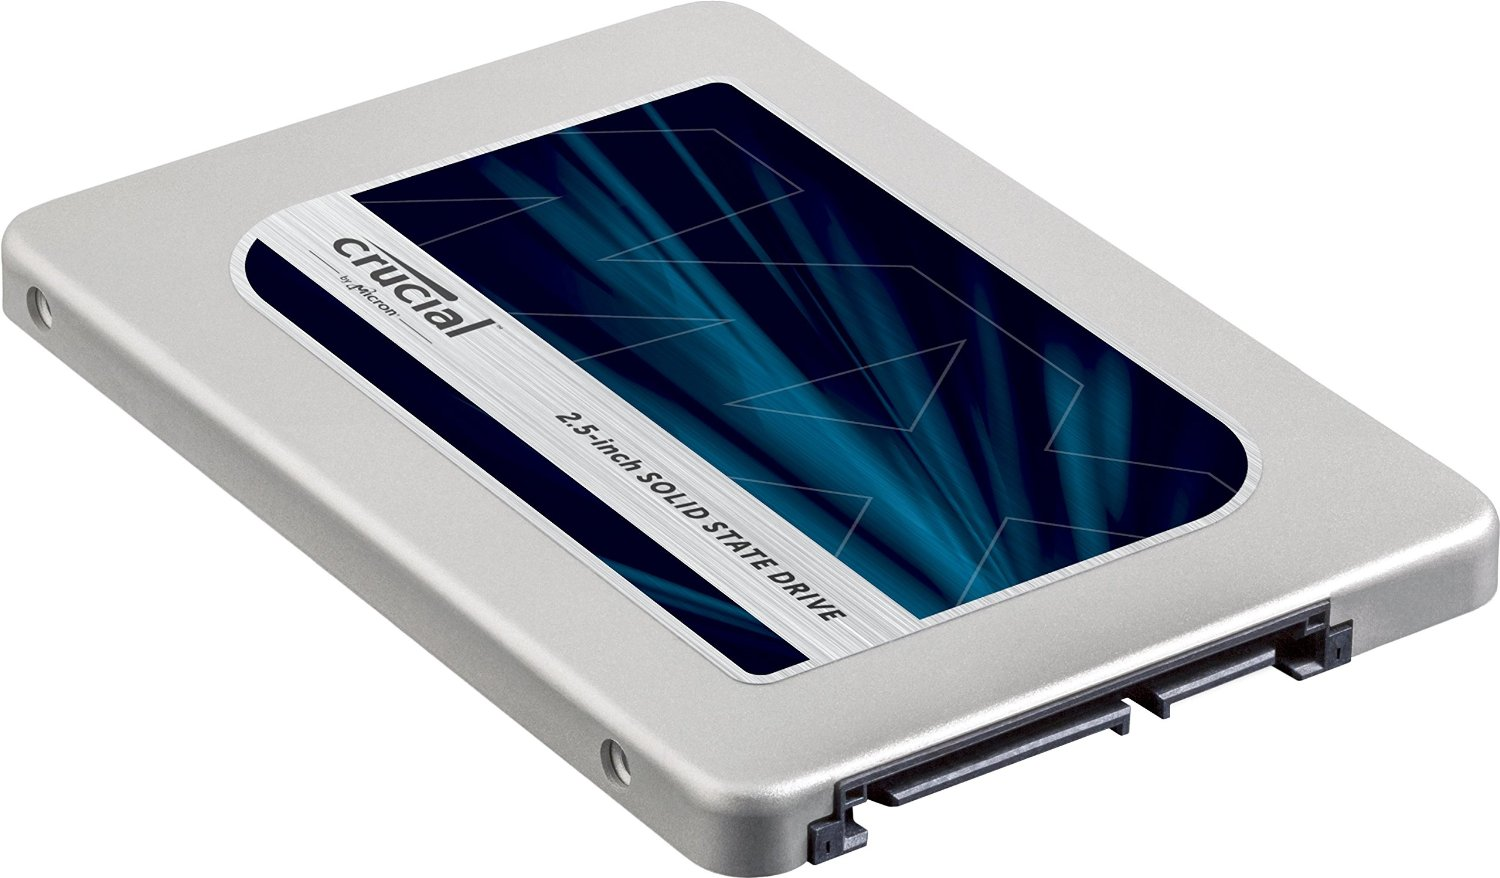 Crucial MX300 SSD review Affordable efficient and fast